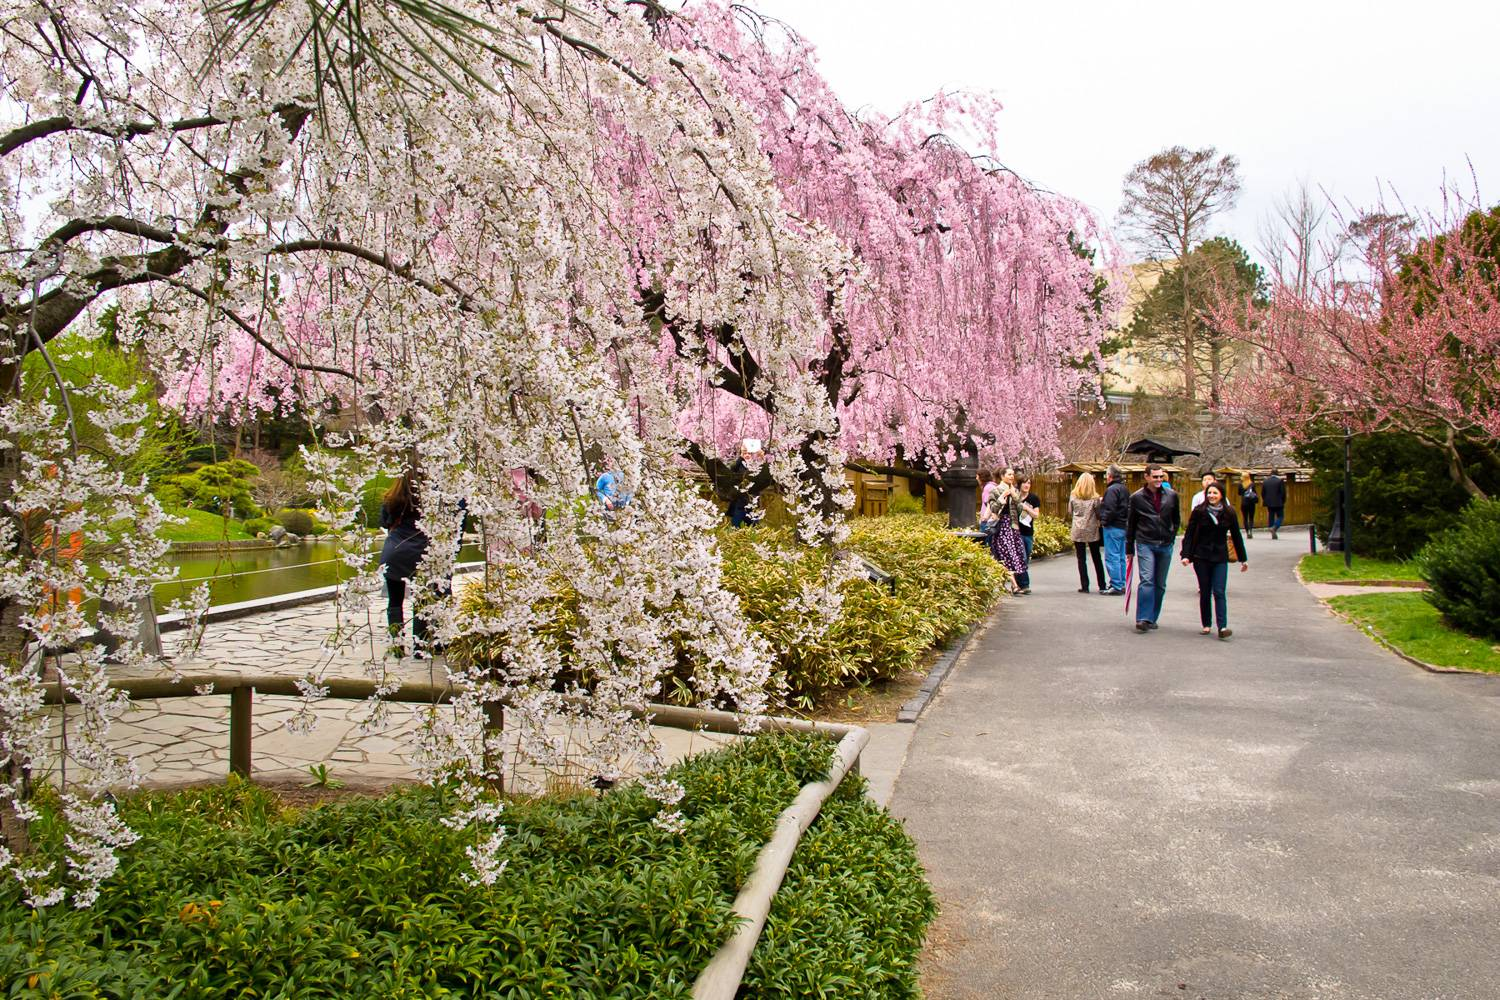 Image of blooming cherry blossom trees and people walking along the paths in the Brooklyn Botanic Garden.